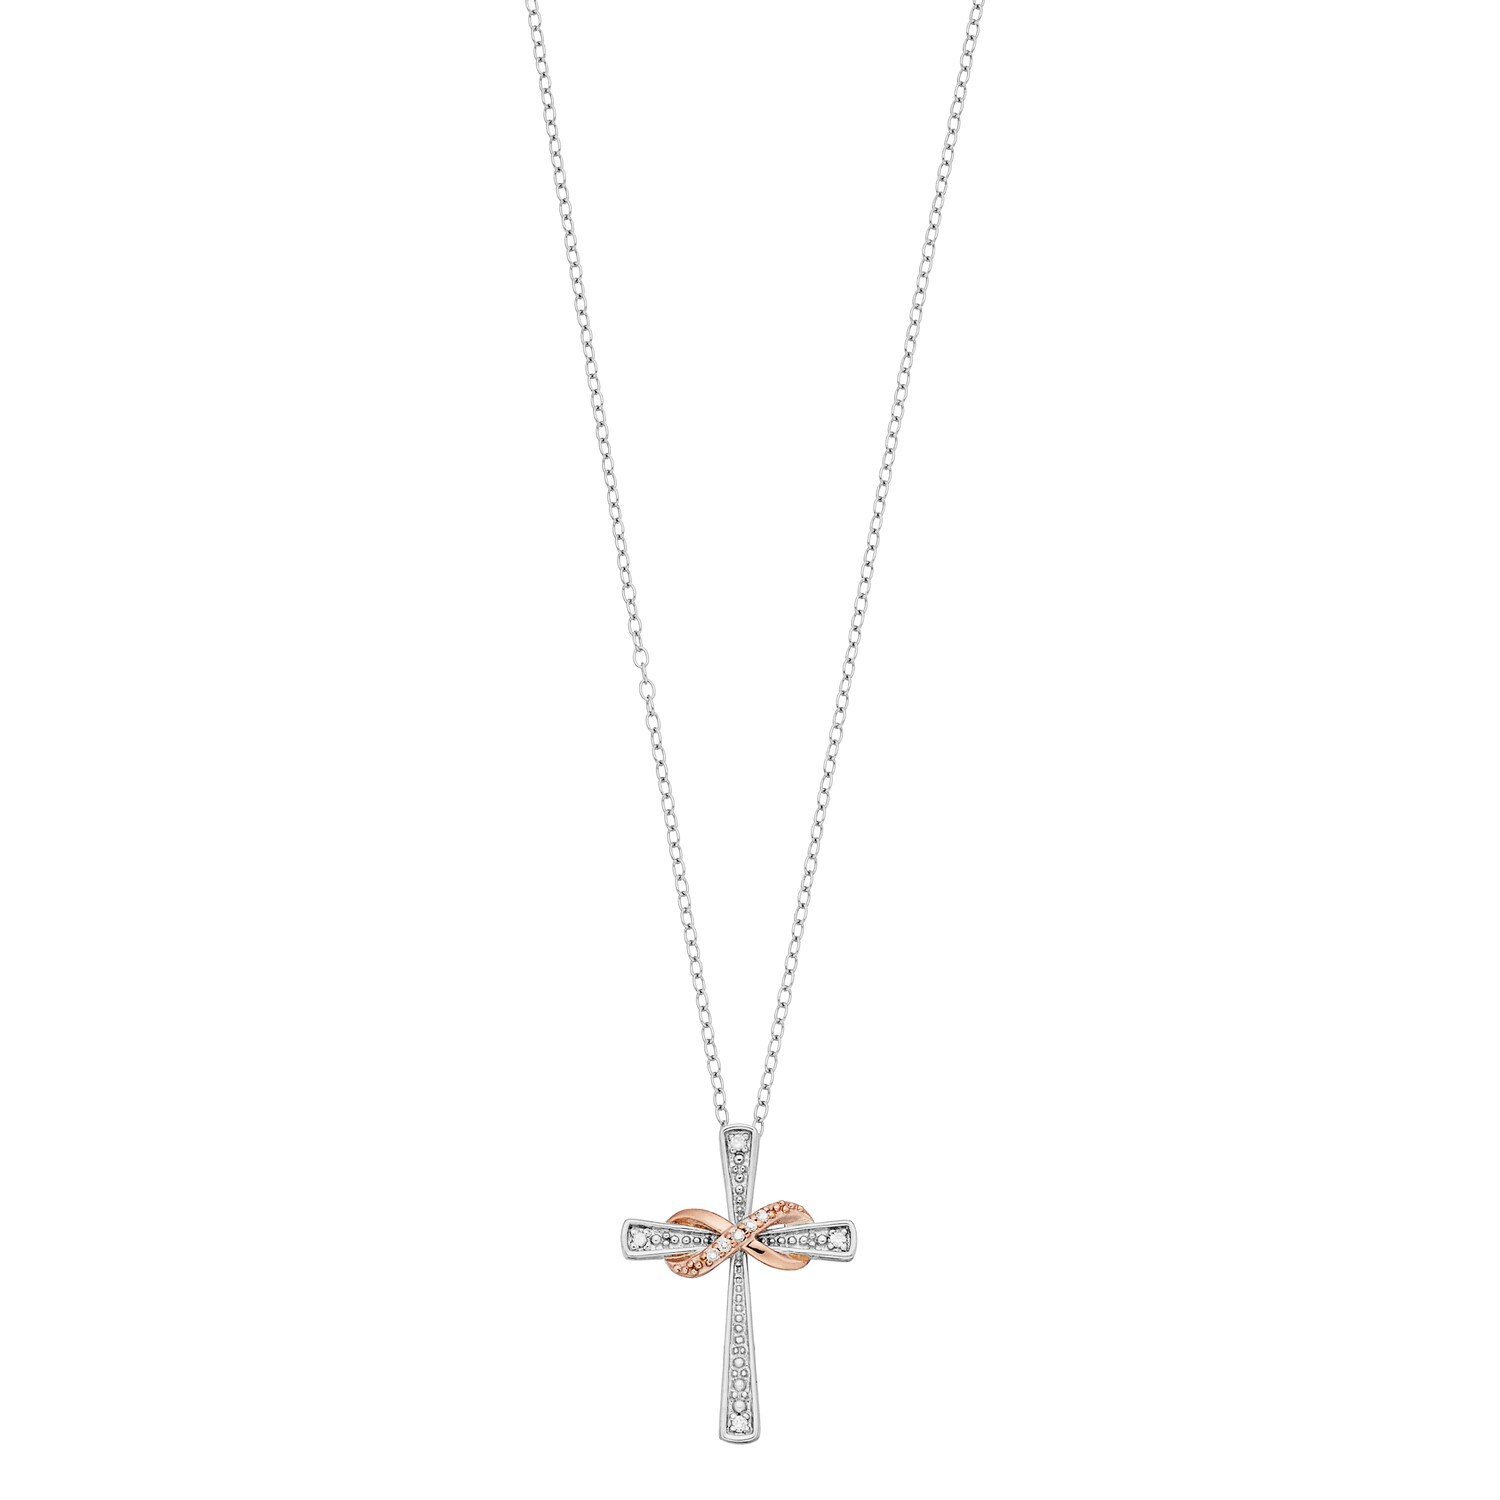 Two Tone 10k Rose Gold Over Silver Diamond Accent Infinity & Cross Pendant